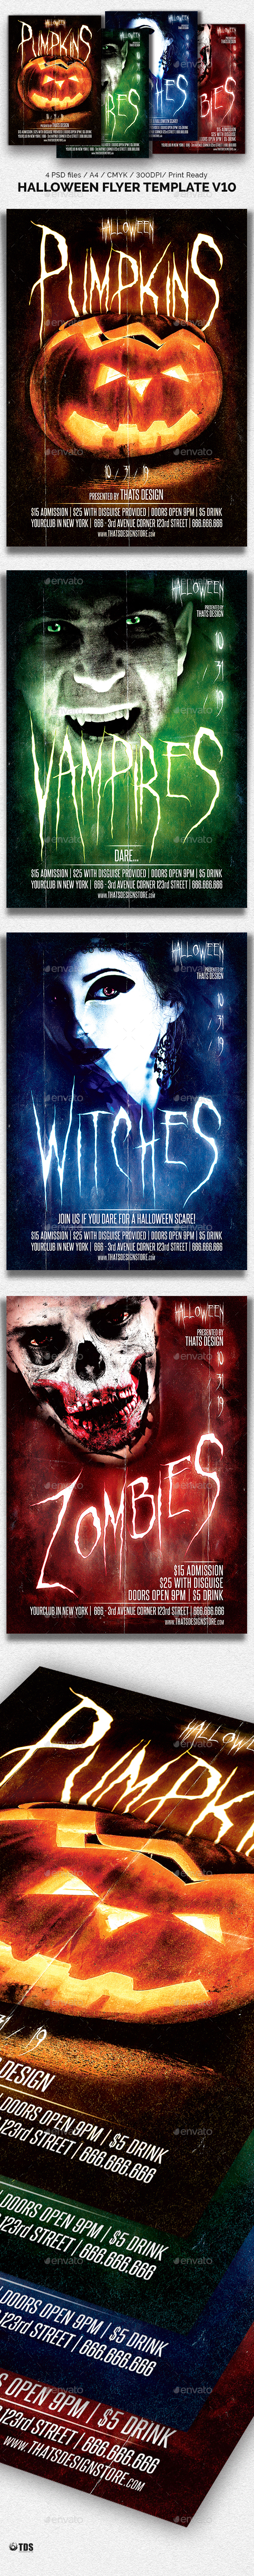 Halloween Flyer Template V10 - Holidays Events